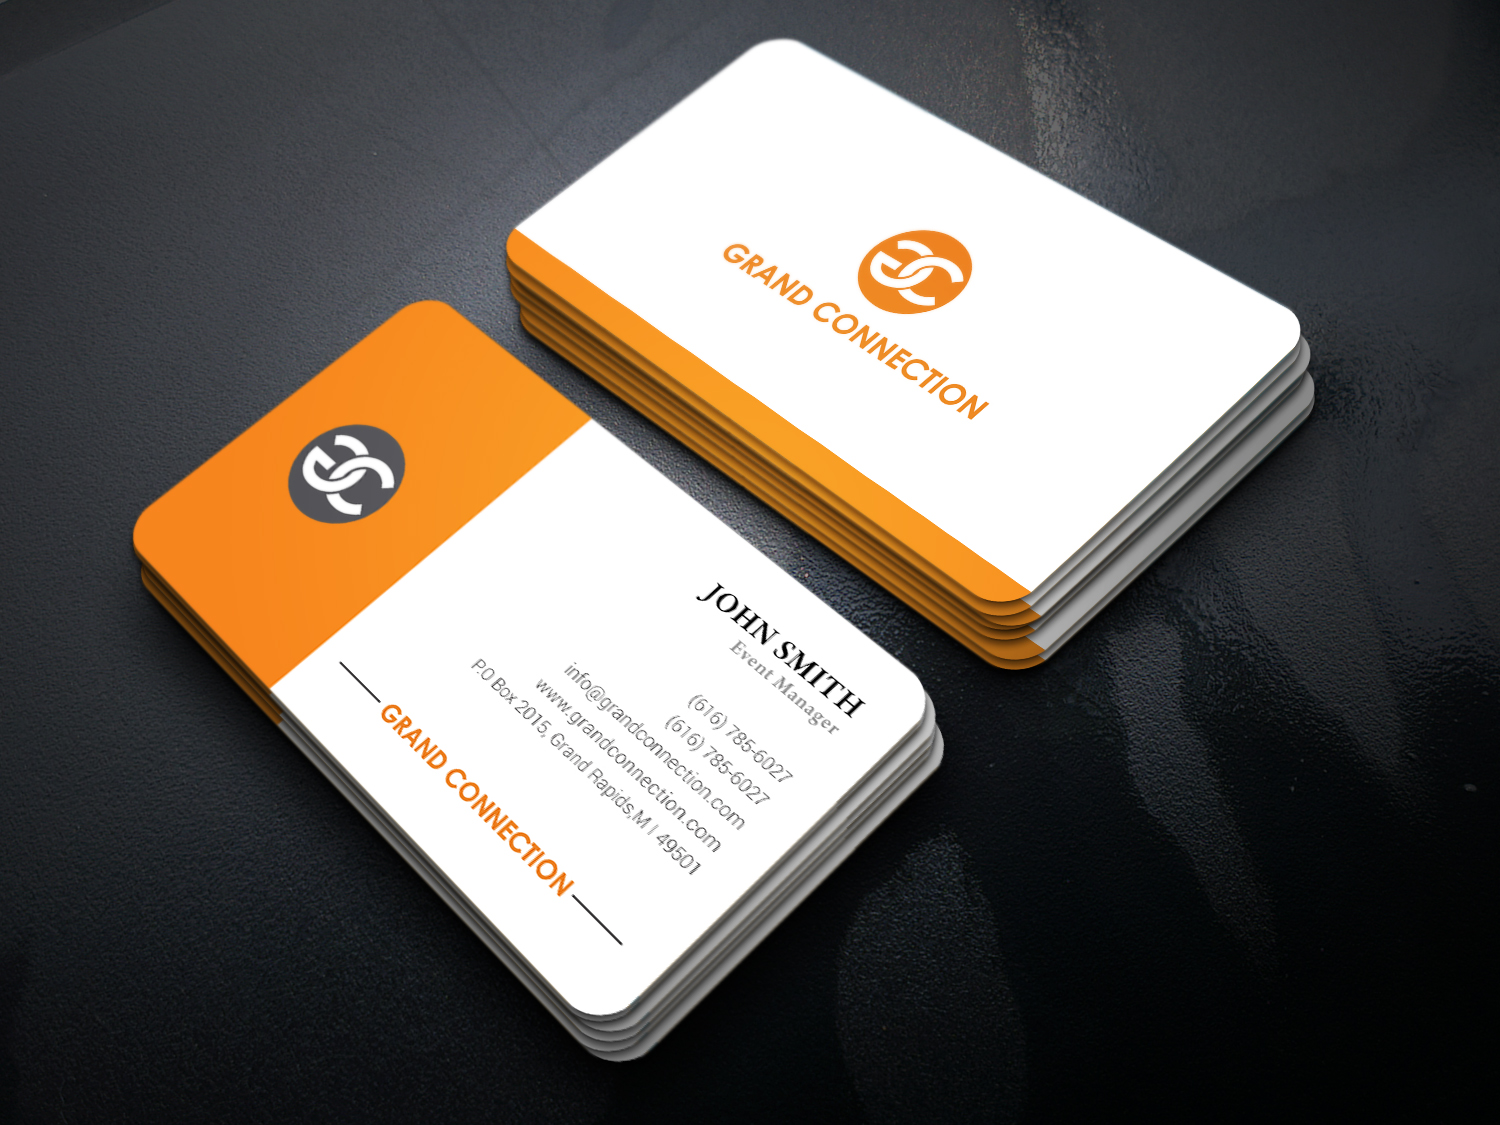 Modern professional event planning business card design for a business card design by graphic flame for this project design 12518568 colourmoves